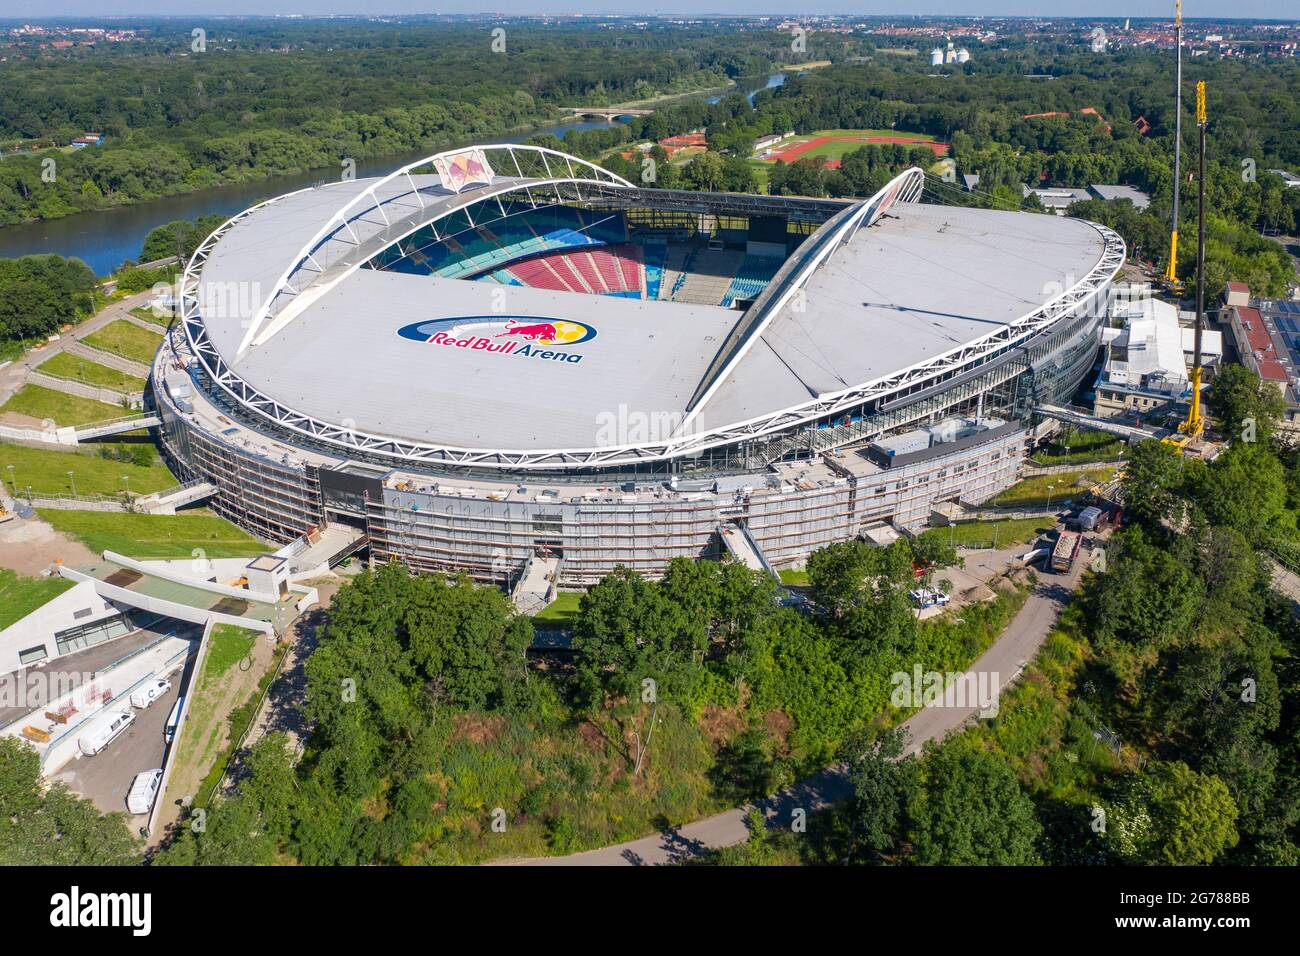 The original plan was to expand red bull arena from 42,558 to 52,000 seats. 14 June 2021 Saxony Leipzig Two Cranes Stand At The Red Bull Arena Rb Leipzig S Home Ground Is Being Rebuilt The Spectator Capacity Increases From 42 558 To 47 069 Standing And Seated The